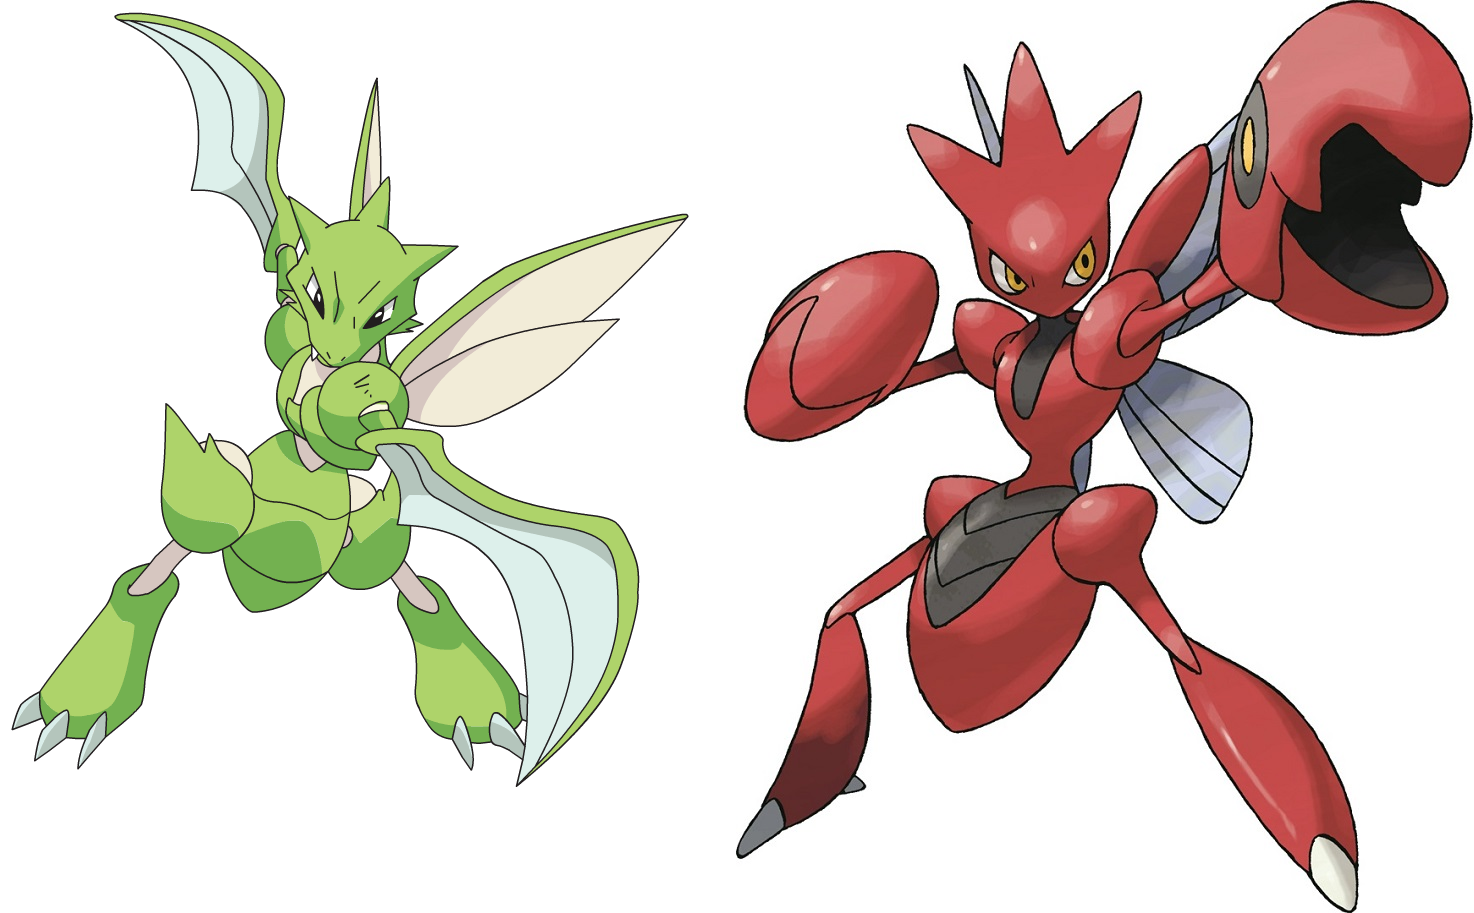 scyther 2 pokemon - photo #7